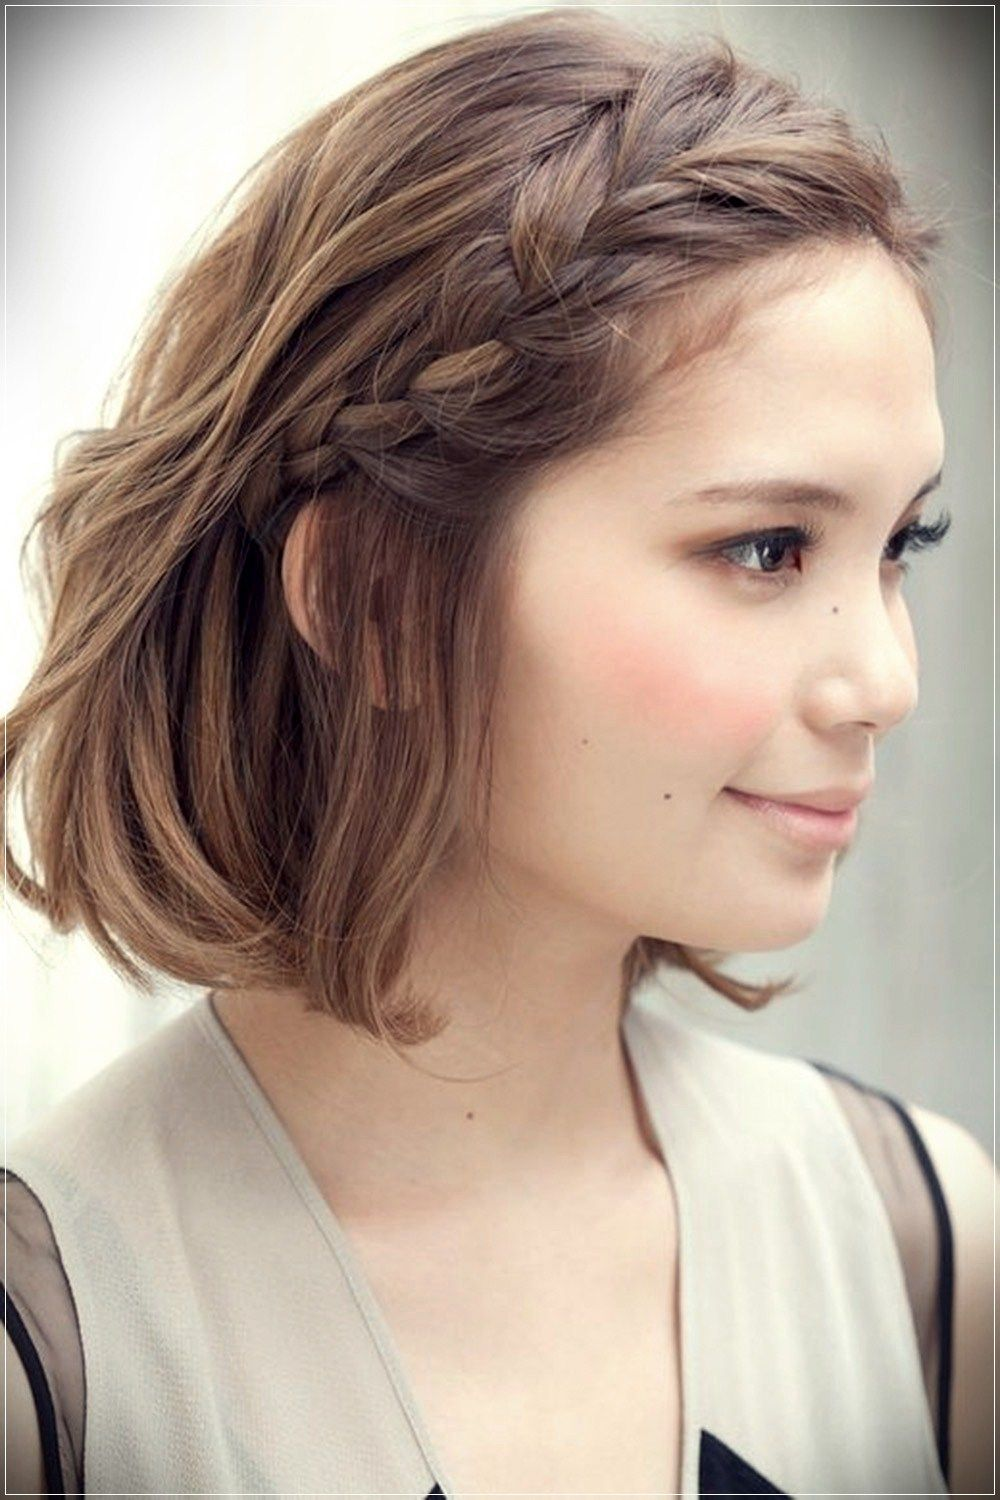 Some cute braids for short hair latest hairstyles pinterest